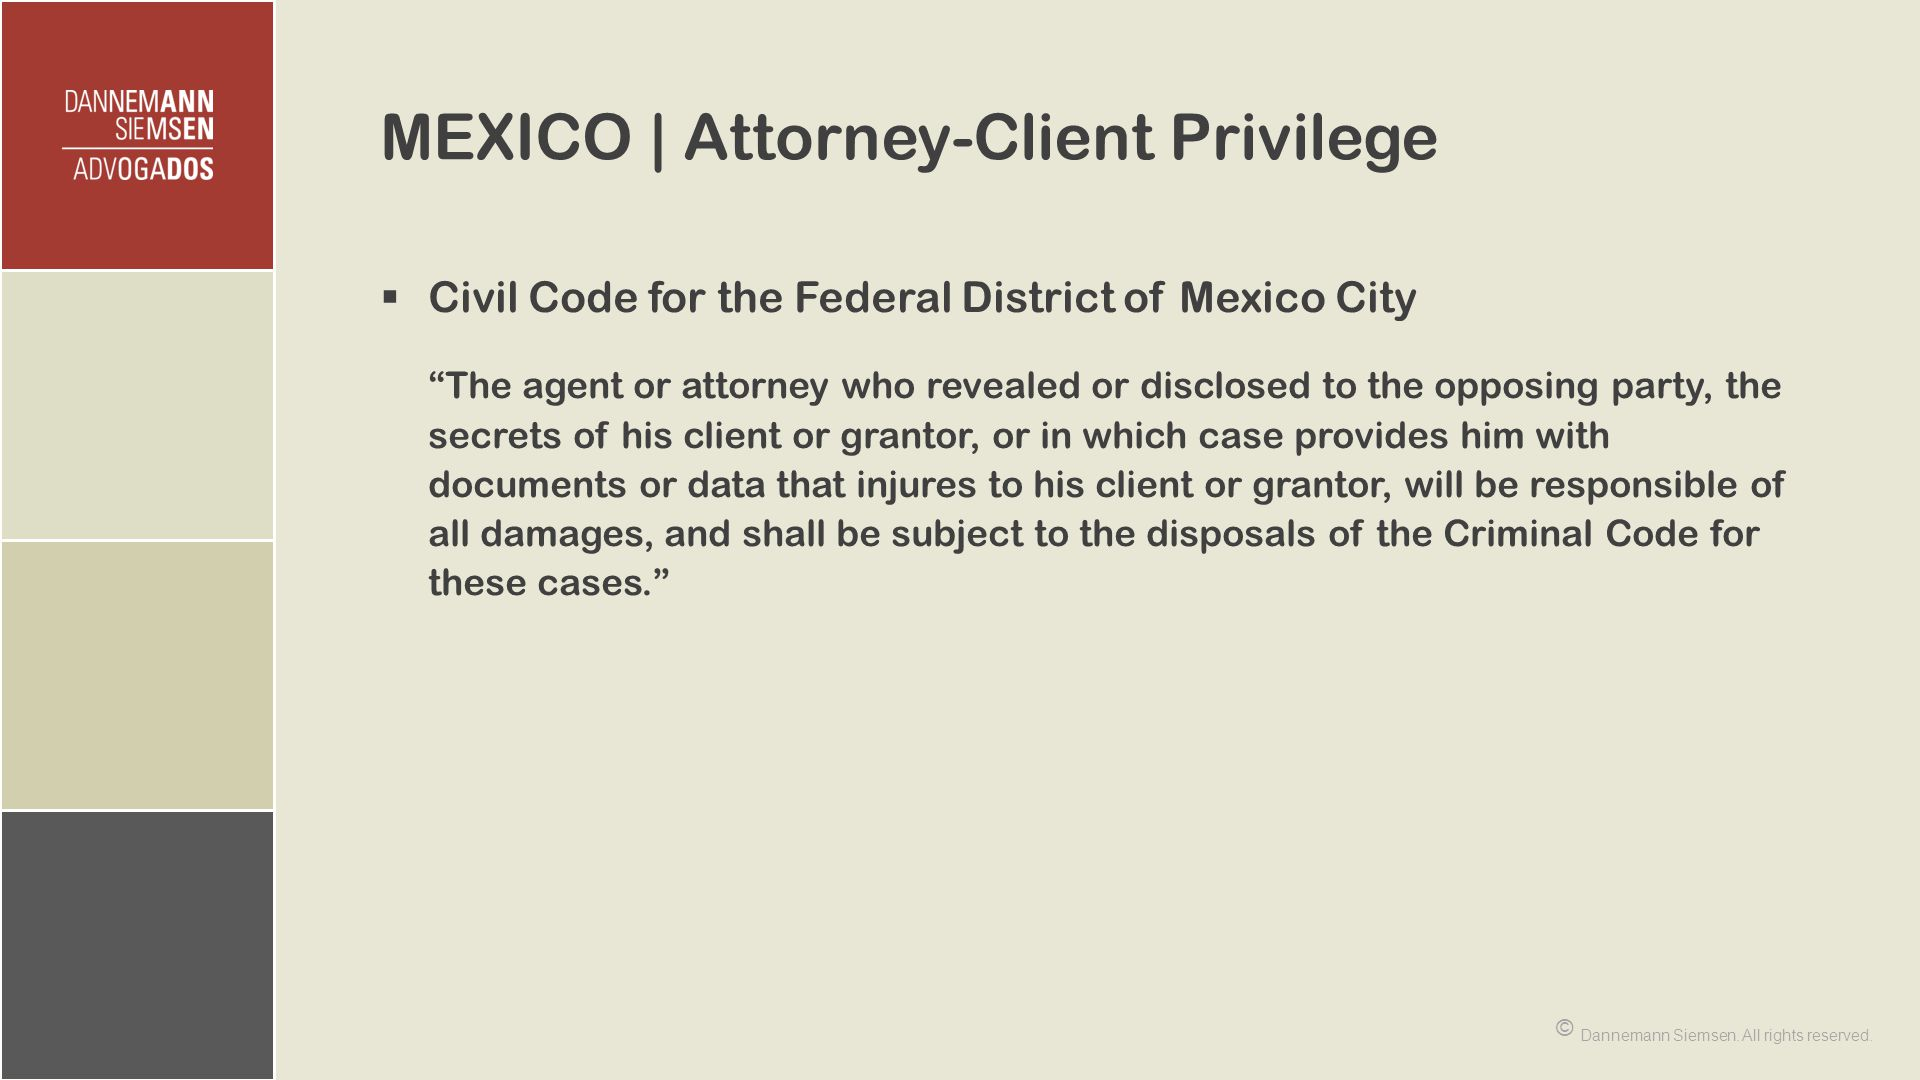 MEXICO | Attorney-Client Privilege  Civil Code for the Federal District of Mexico City The agent or attorney who revealed or disclosed to the opposing party, the secrets of his client or grantor, or in which case provides him with documents or data that injures to his client or grantor, will be responsible of all damages, and shall be subject to the disposals of the Criminal Code for these cases. © Dannemann Siemsen.